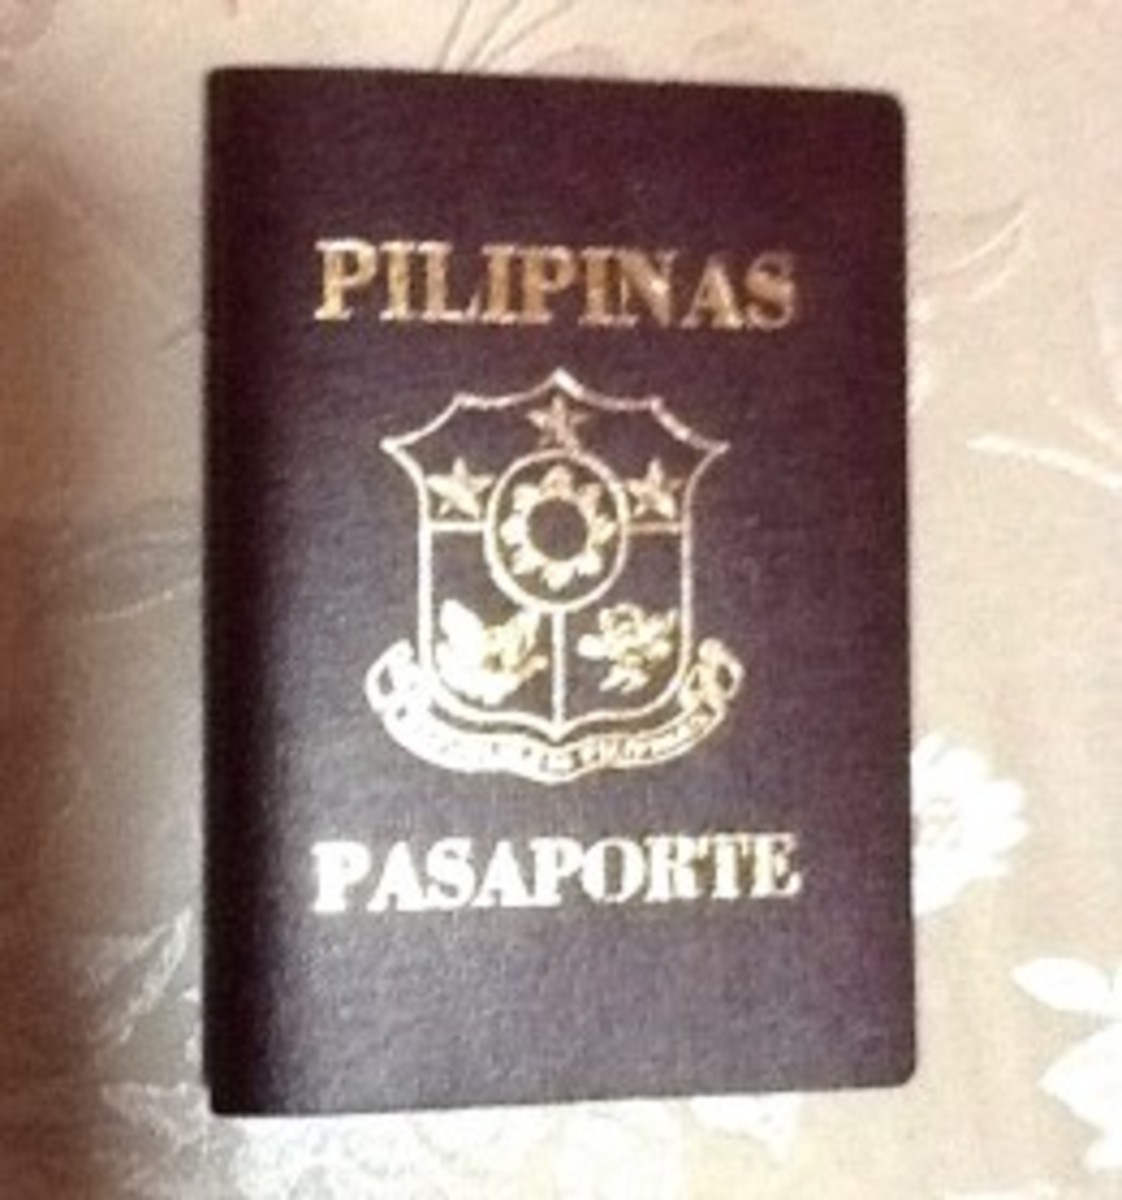 Schengen Visa Requirements for Filipino Citizens – Successful Application in the Philippines